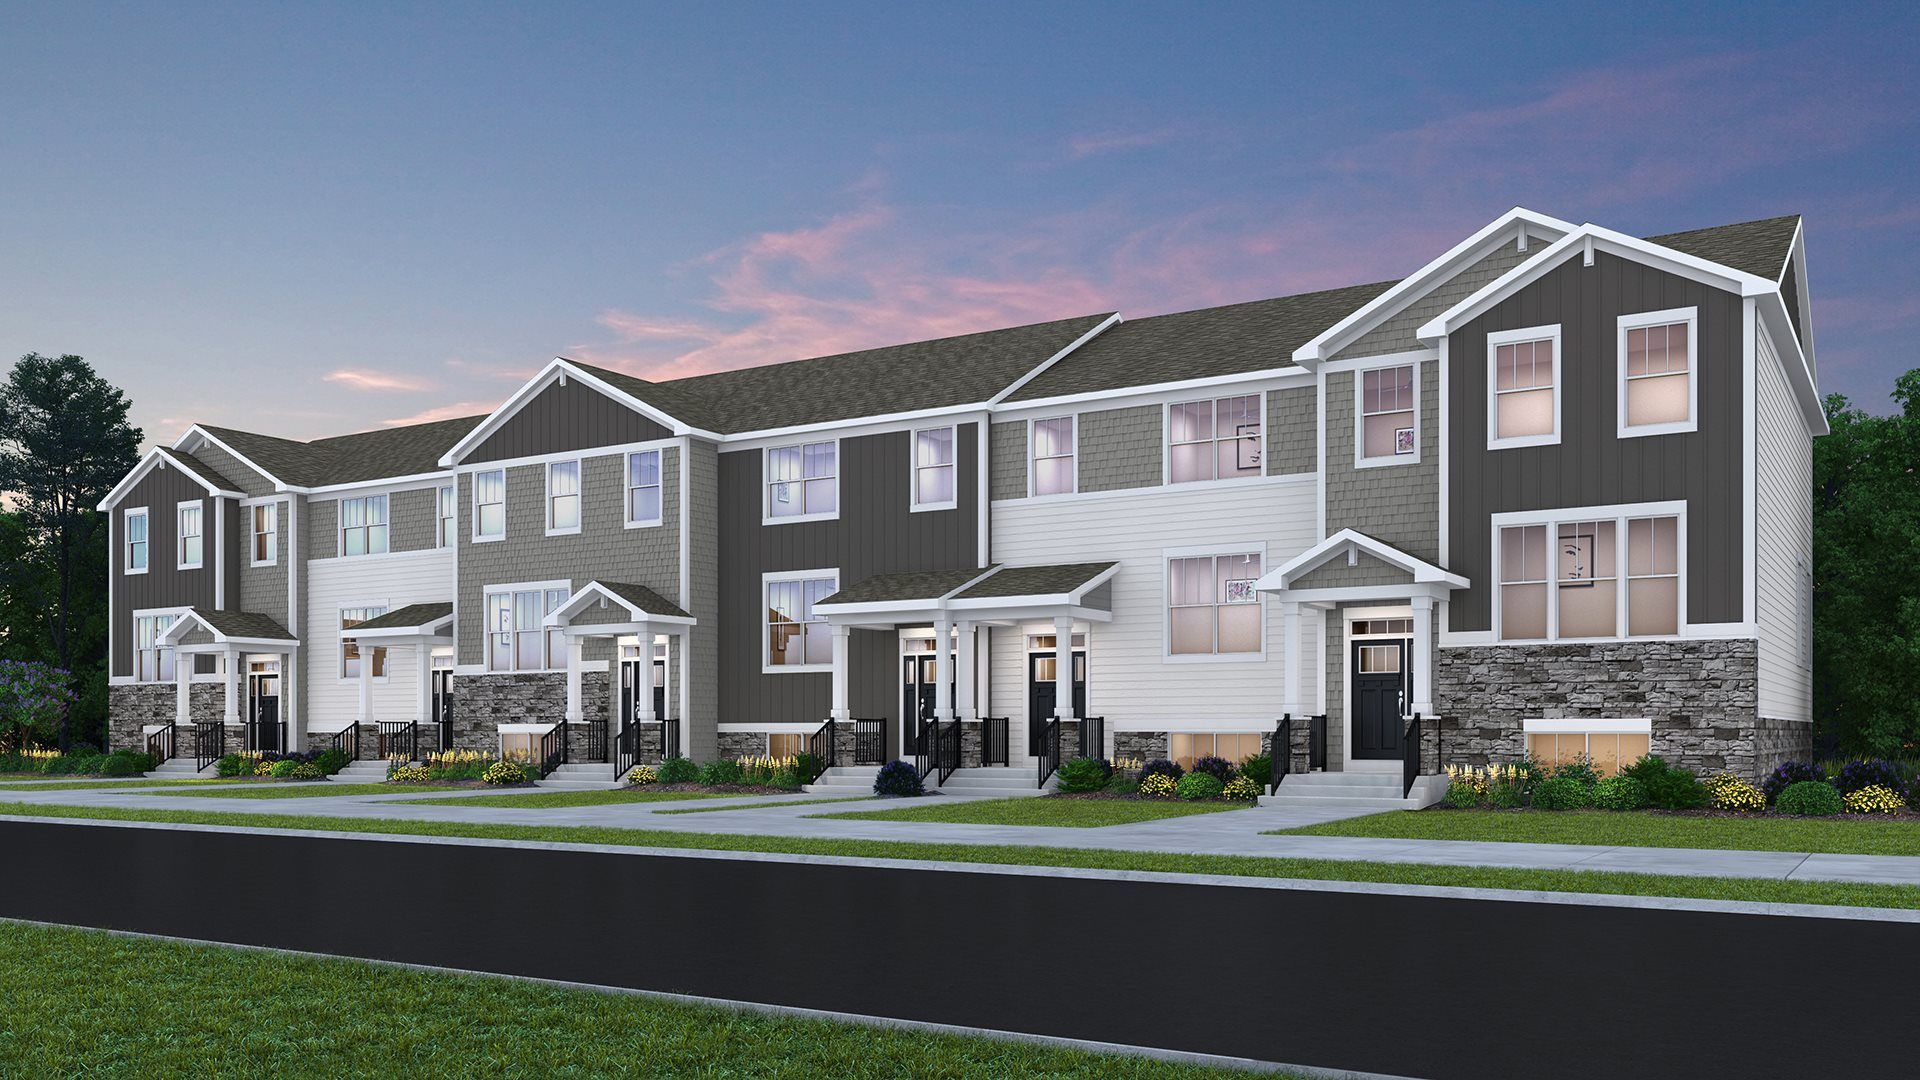 New Urban Townhomes for sale in South Elgin, IL by